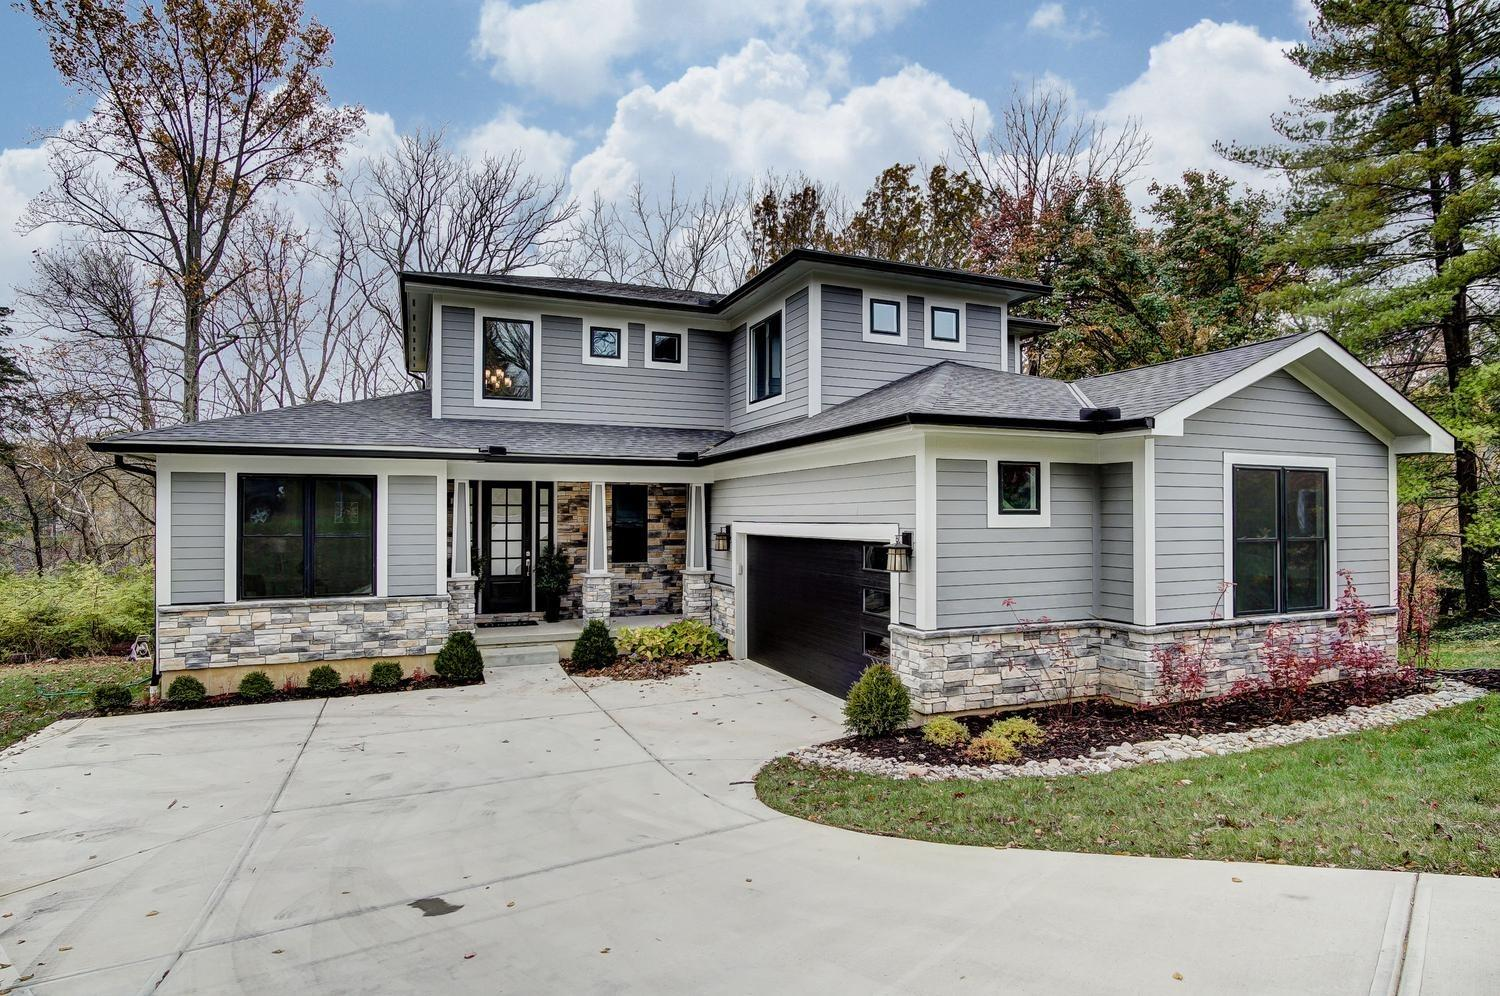 Photo 1 for 8701 Appleknoll Ln Kenwood, OH 45236